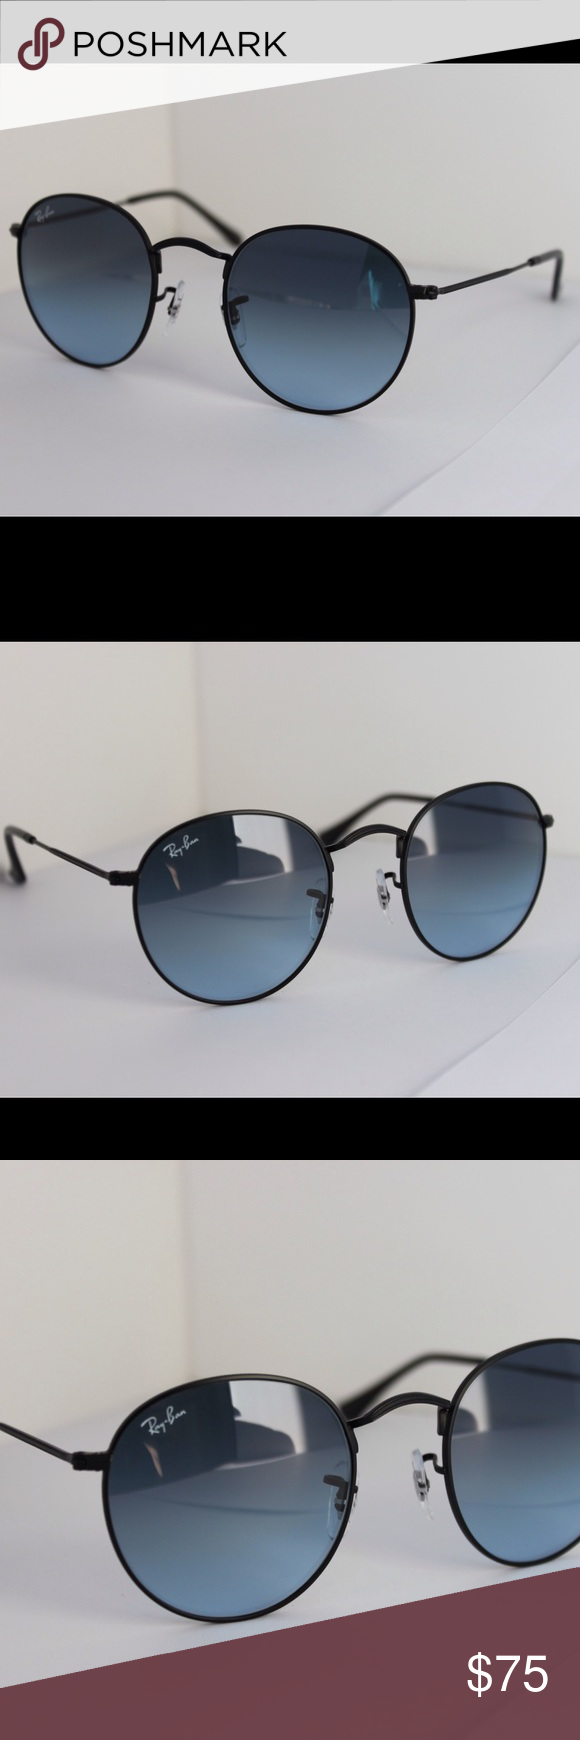 a072c2bfb4 Ray-Ban round sunglasses in black blue gradient NWT never worn Ray ...